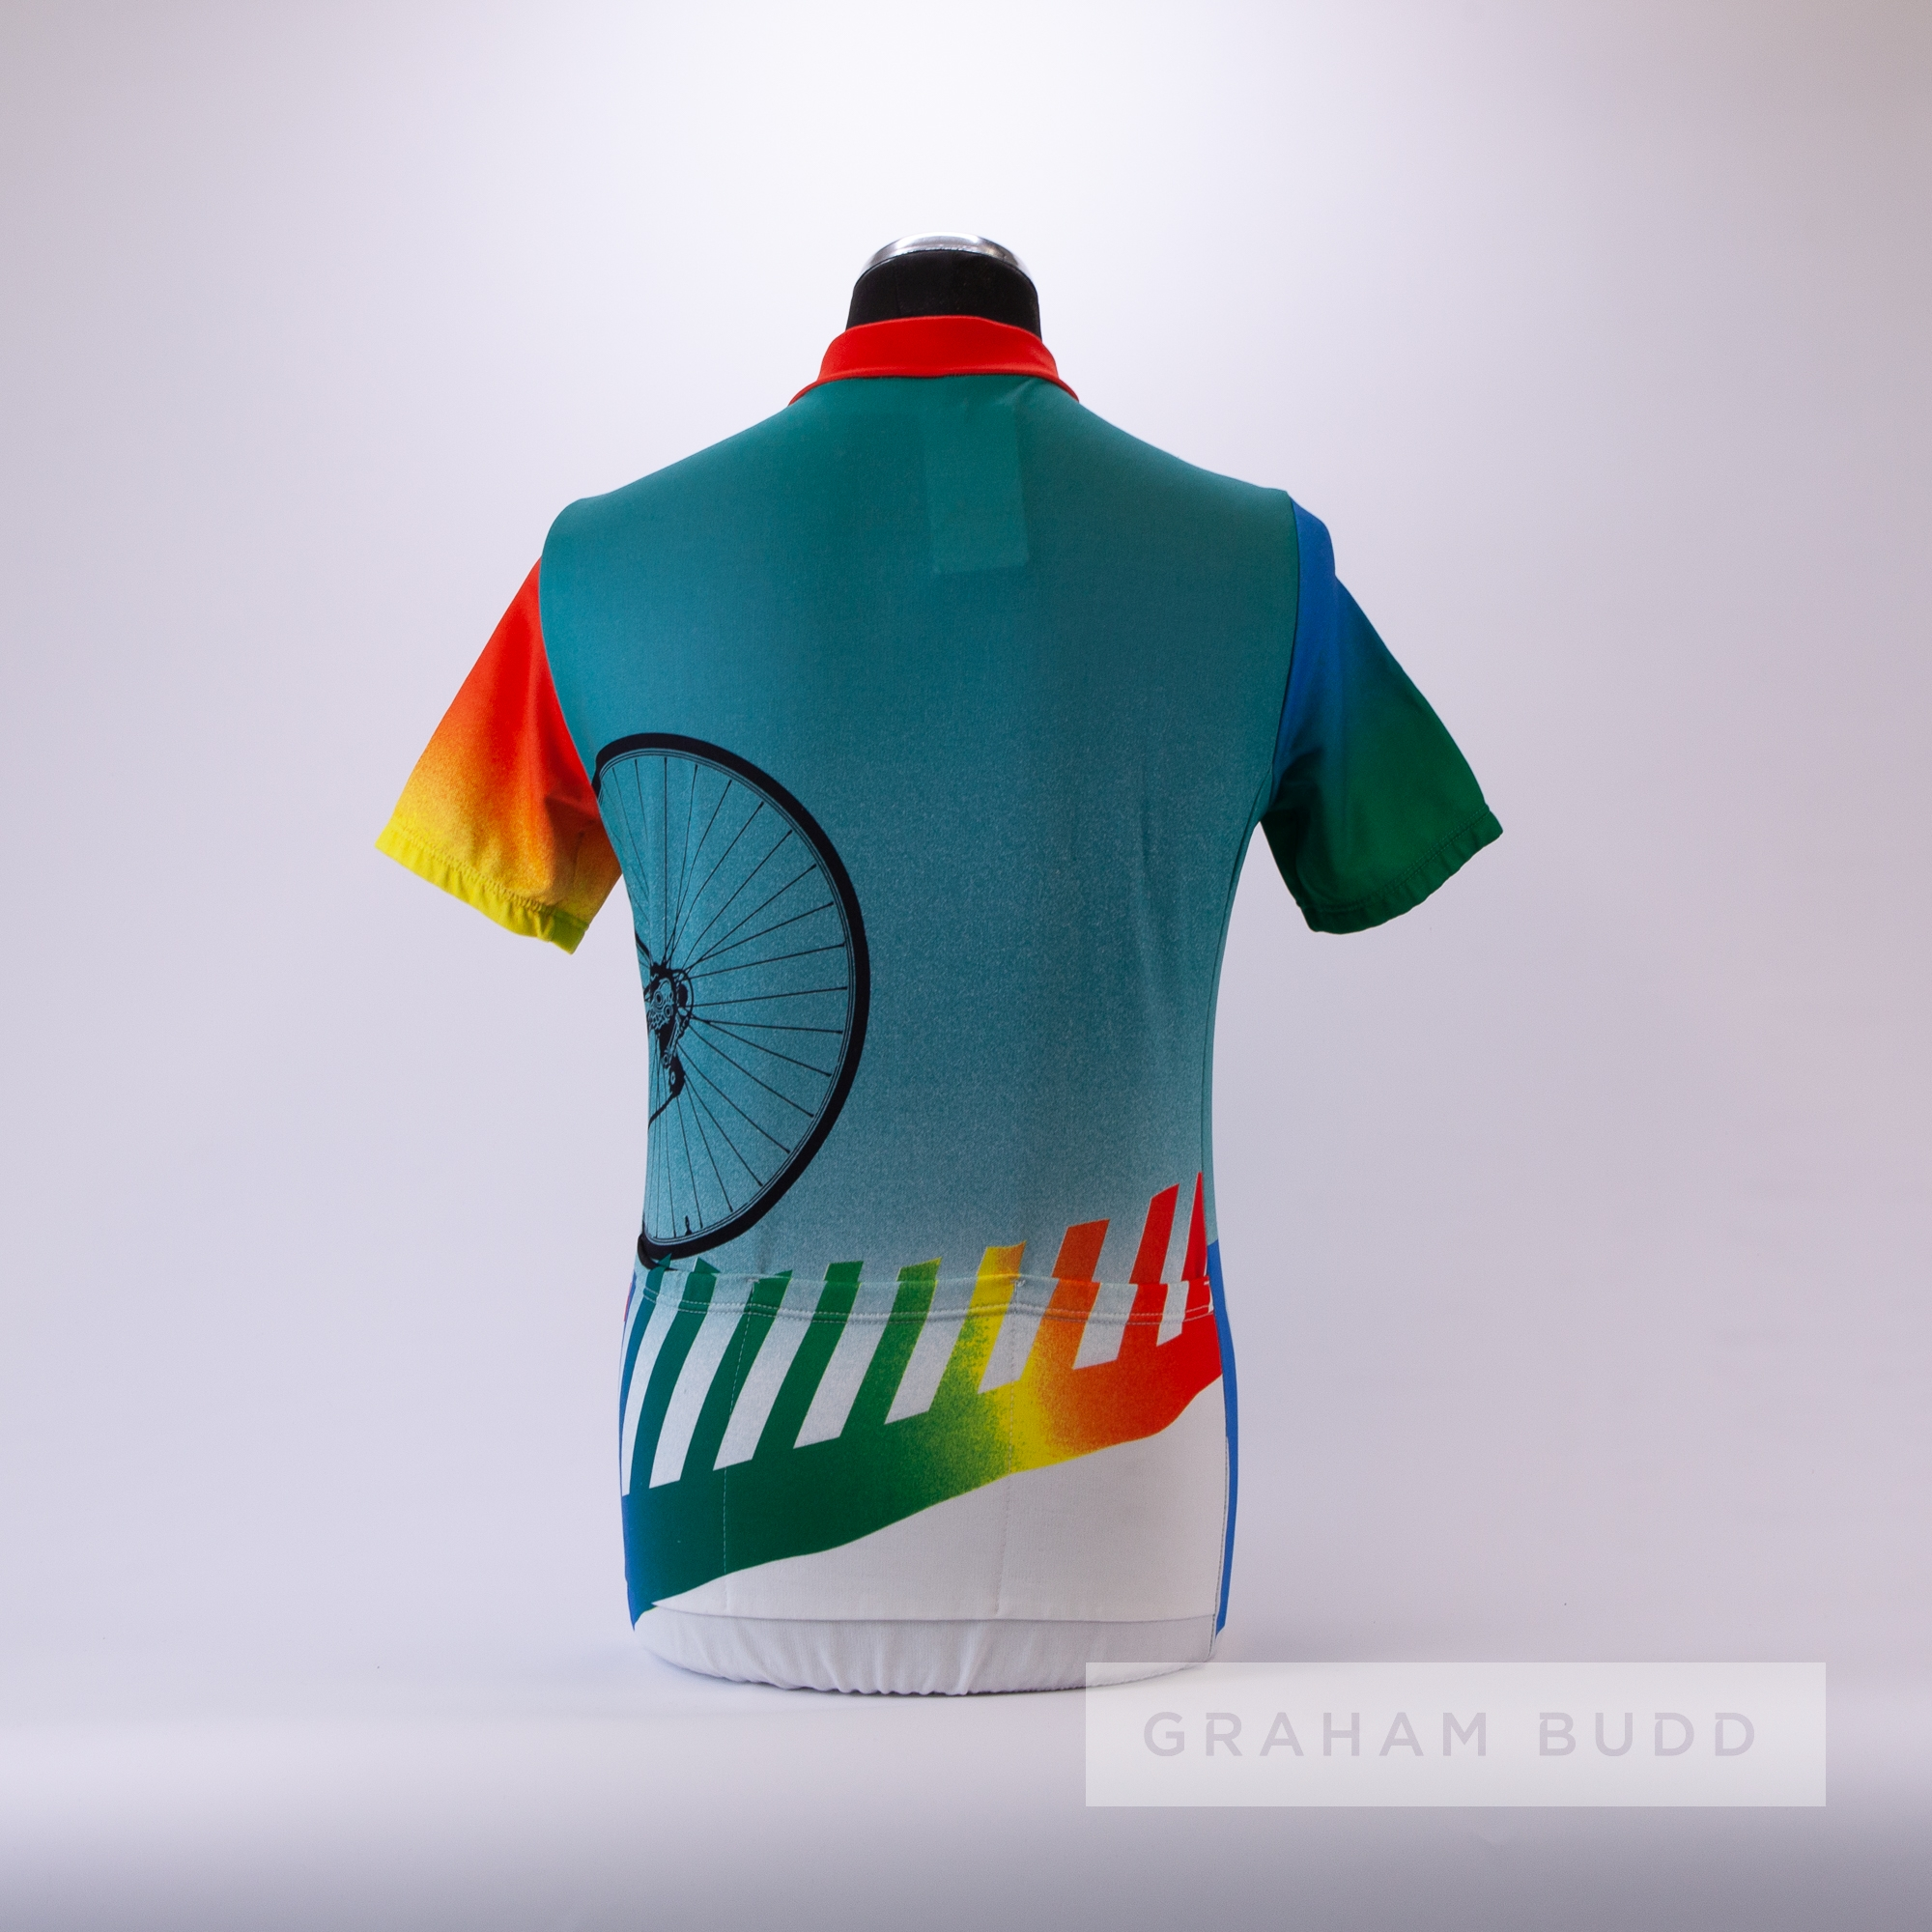 1985 turquoise, orange, blue and green Erima Art Cycling team race jersey, scarce, polyester - Image 4 of 4